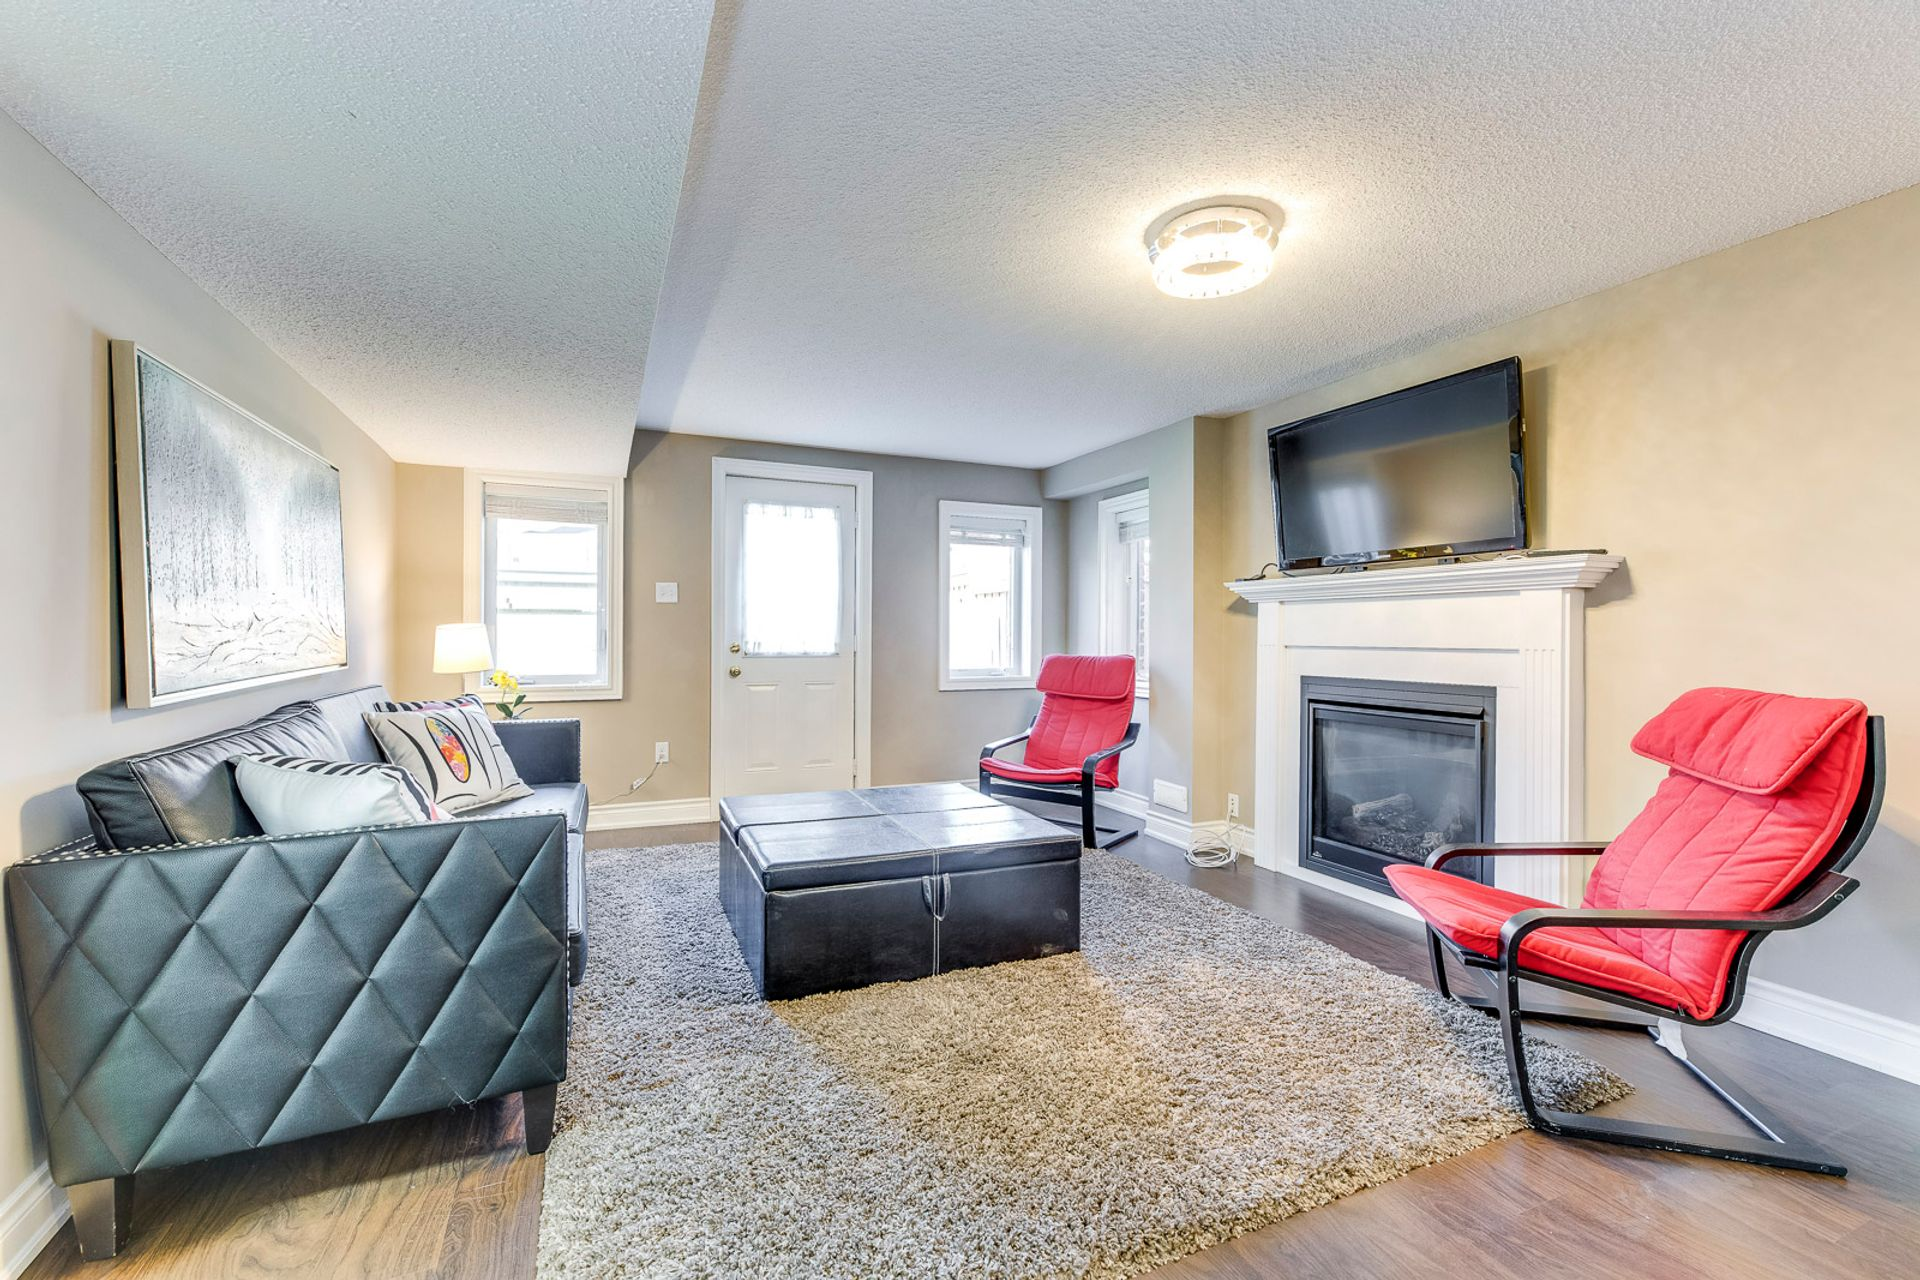 mls-57 at 5480 Meadowcrest Avenue, Churchill Meadows, Mississauga